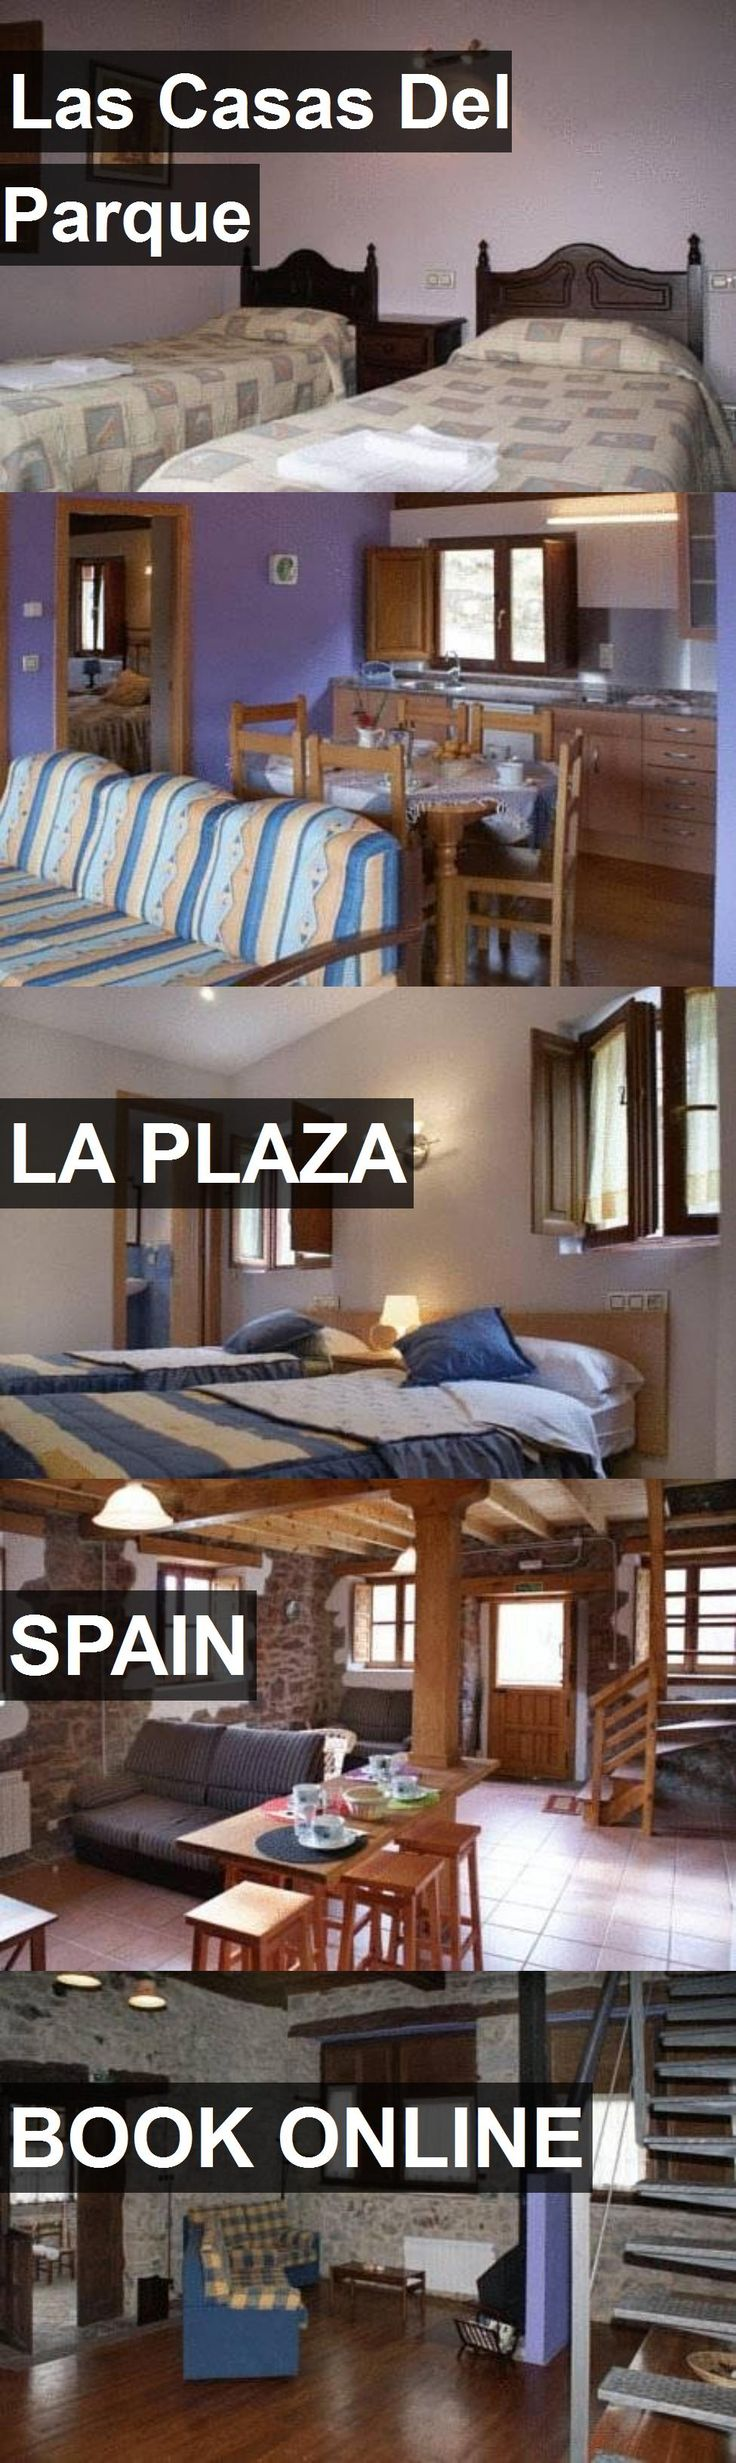 Hotel Las Casas Del Parque in La Plaza, Spain. For more information, photos, reviews and best prices please follow the link. #Spain #LaPlaza #travel #vacation #hotel